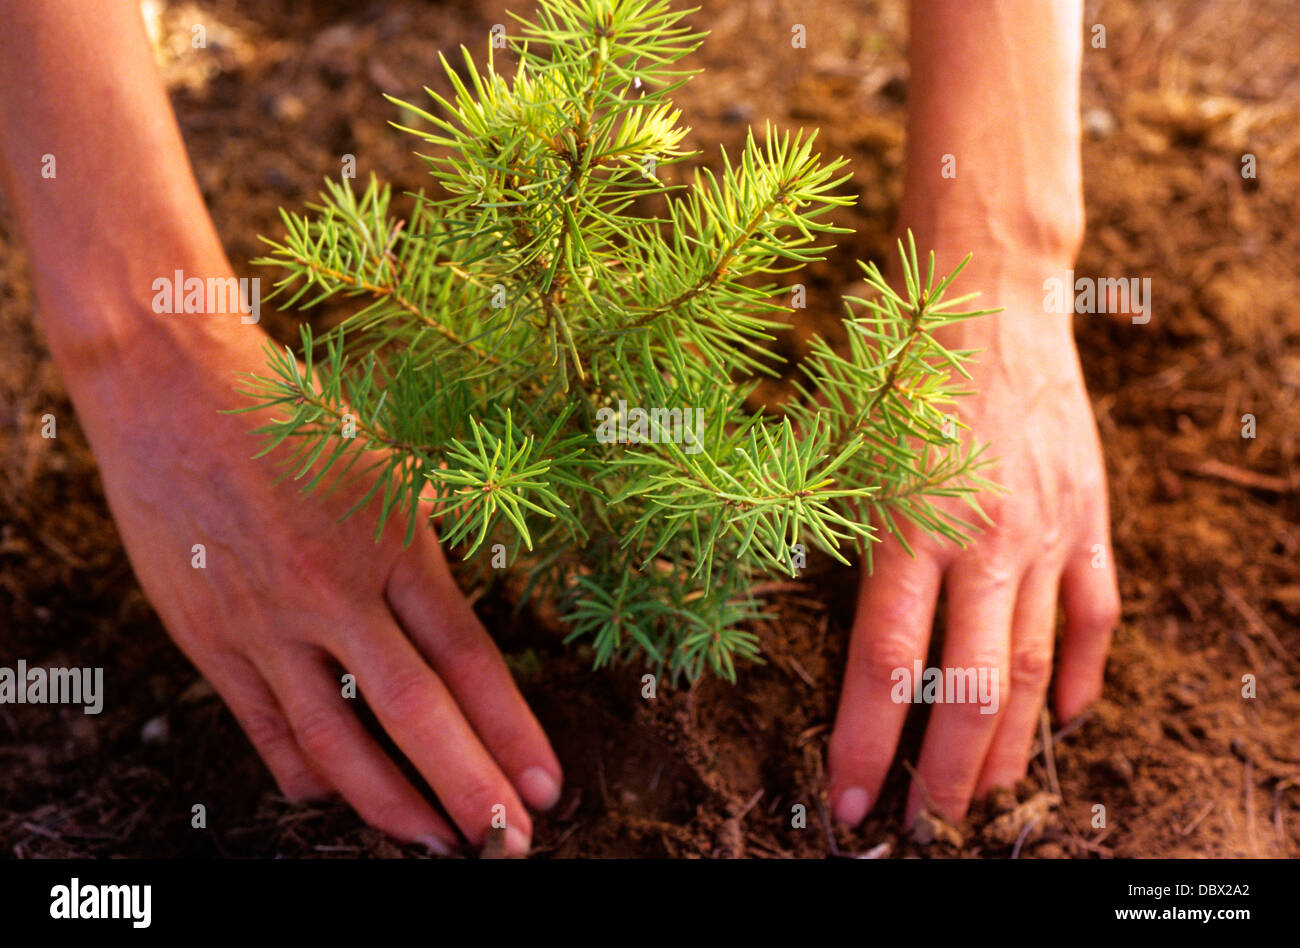 1990s Symbolic Environment Hands Planting Pine Tree Sapling Stock